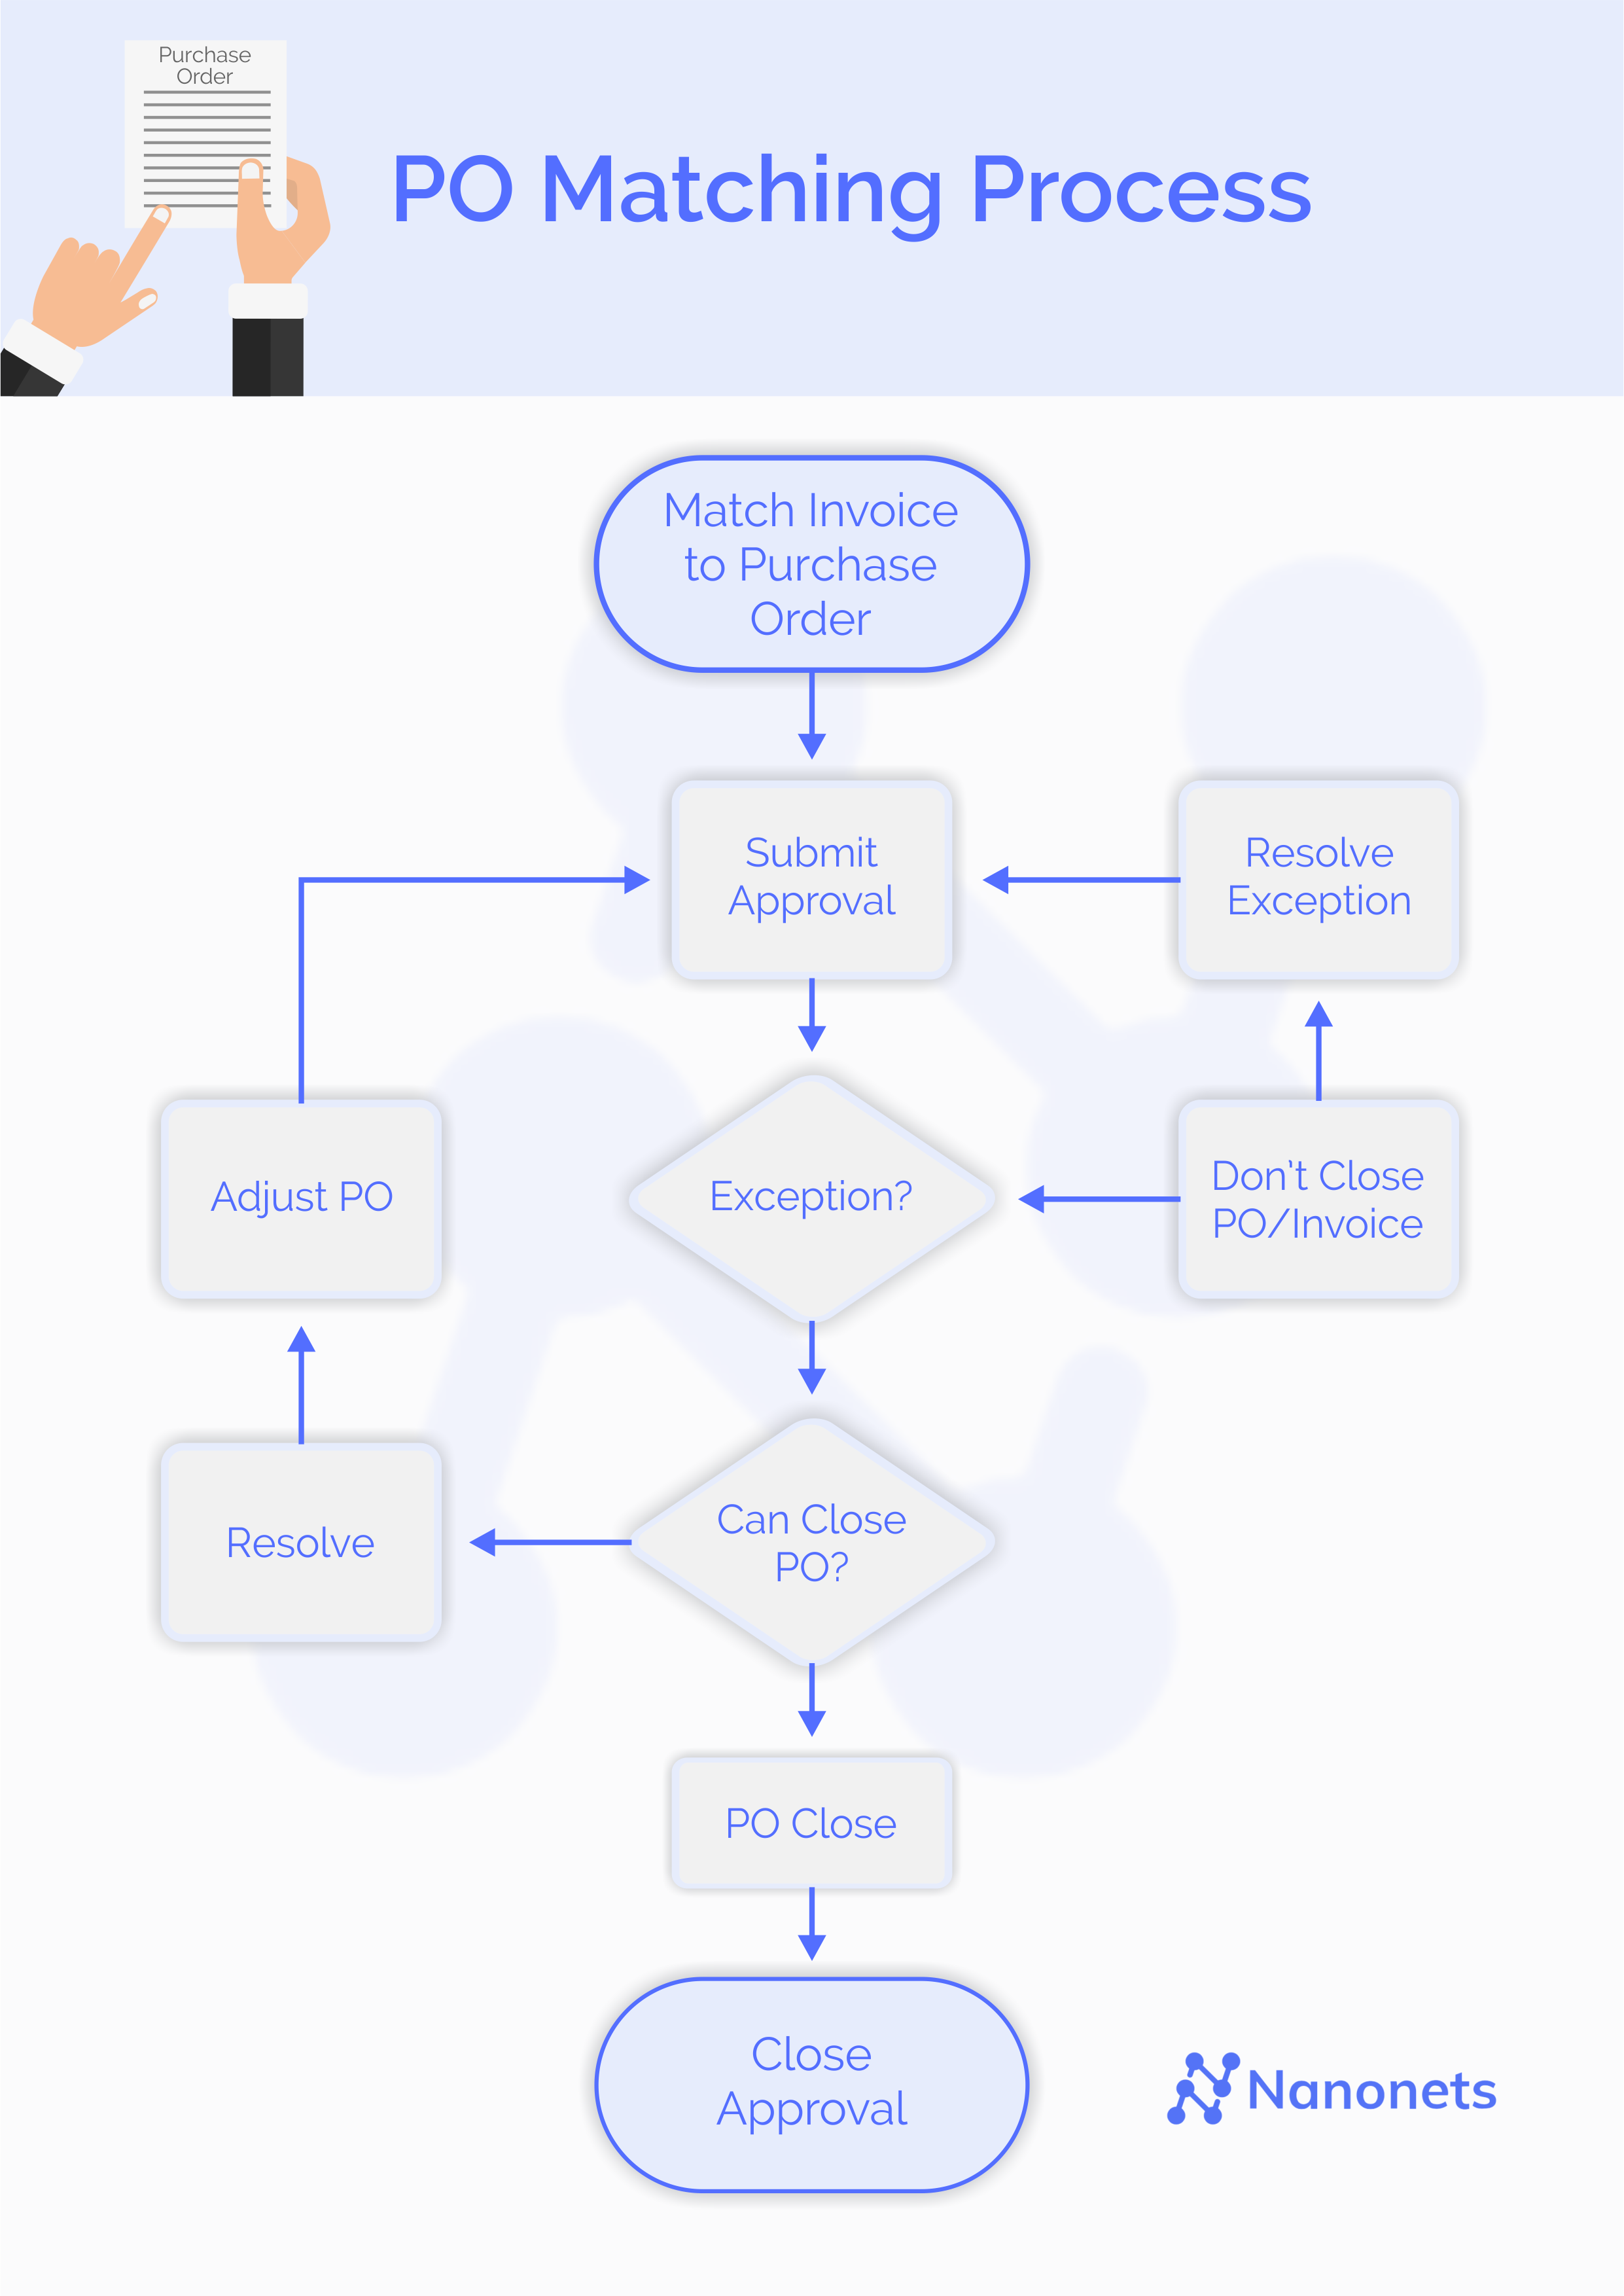 Steps in the PO Matching Process